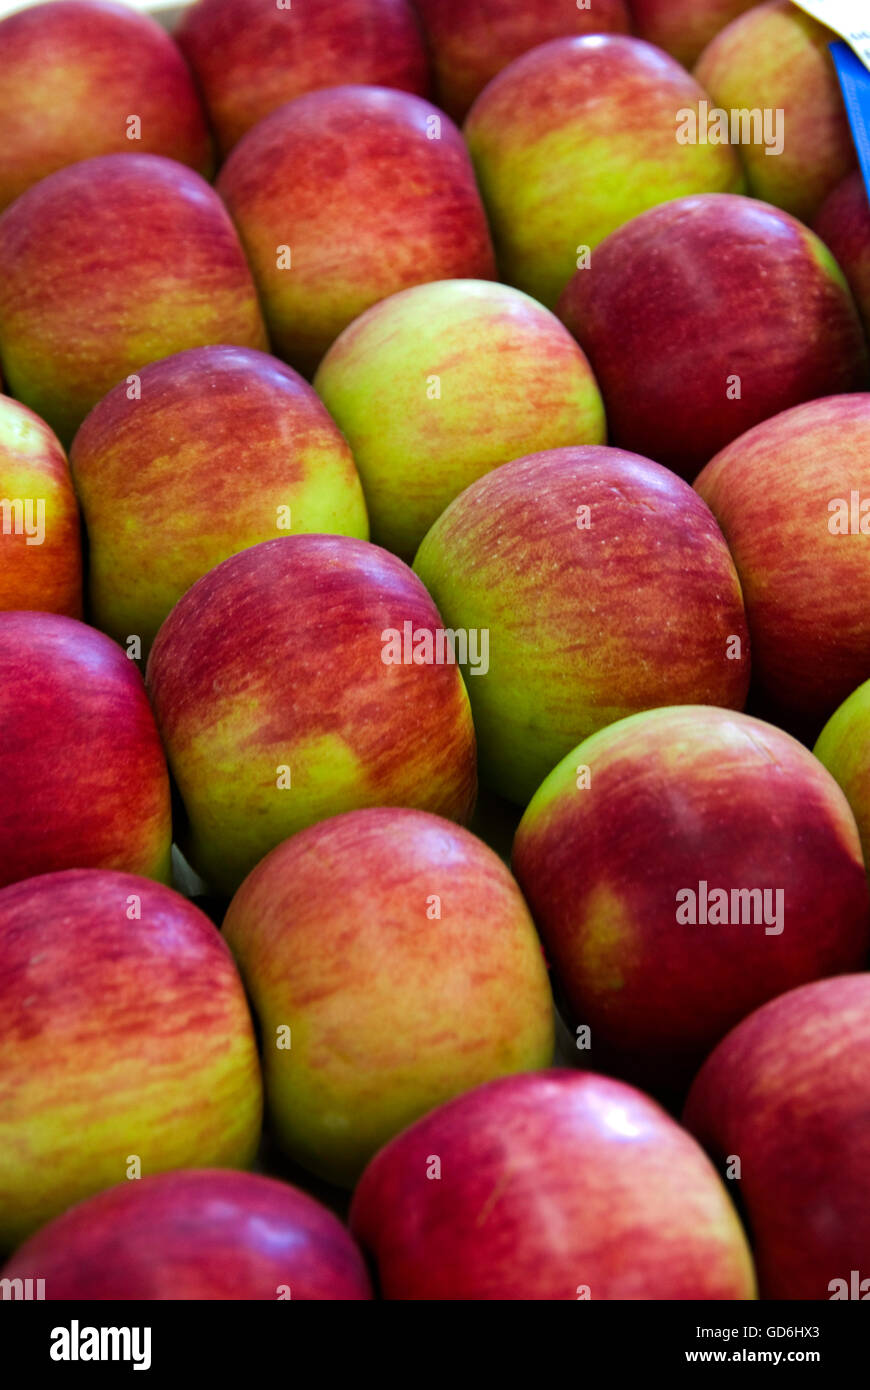 Close up of tray of Apples - Stock Image